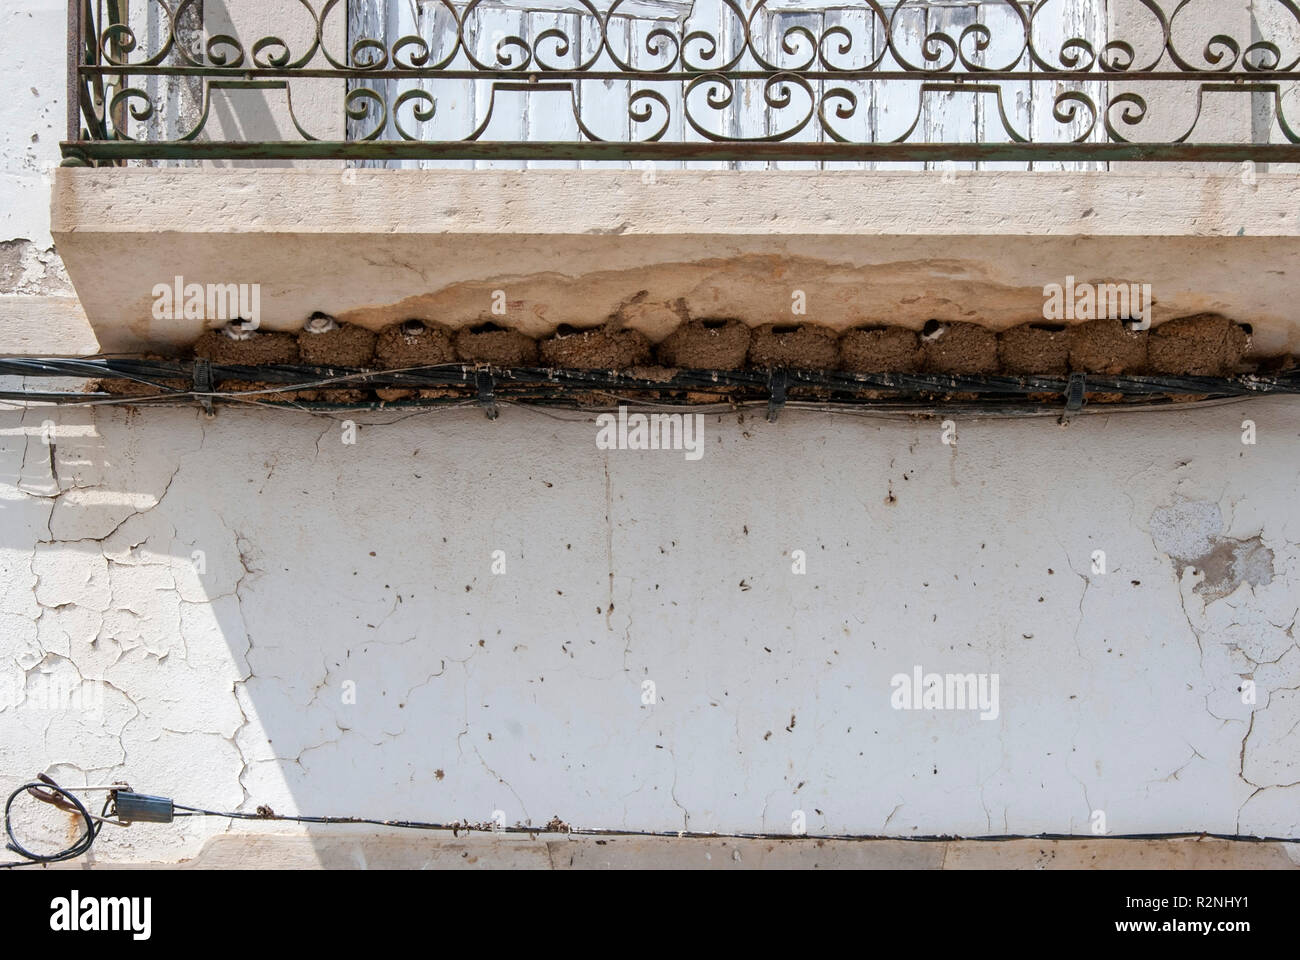 A Row of Twelve Swallow Mud Nests Below a Balcony Tavira Portugal many lots of swallow bird mud nests wedged between the underside of a balcony ledge  - Stock Image